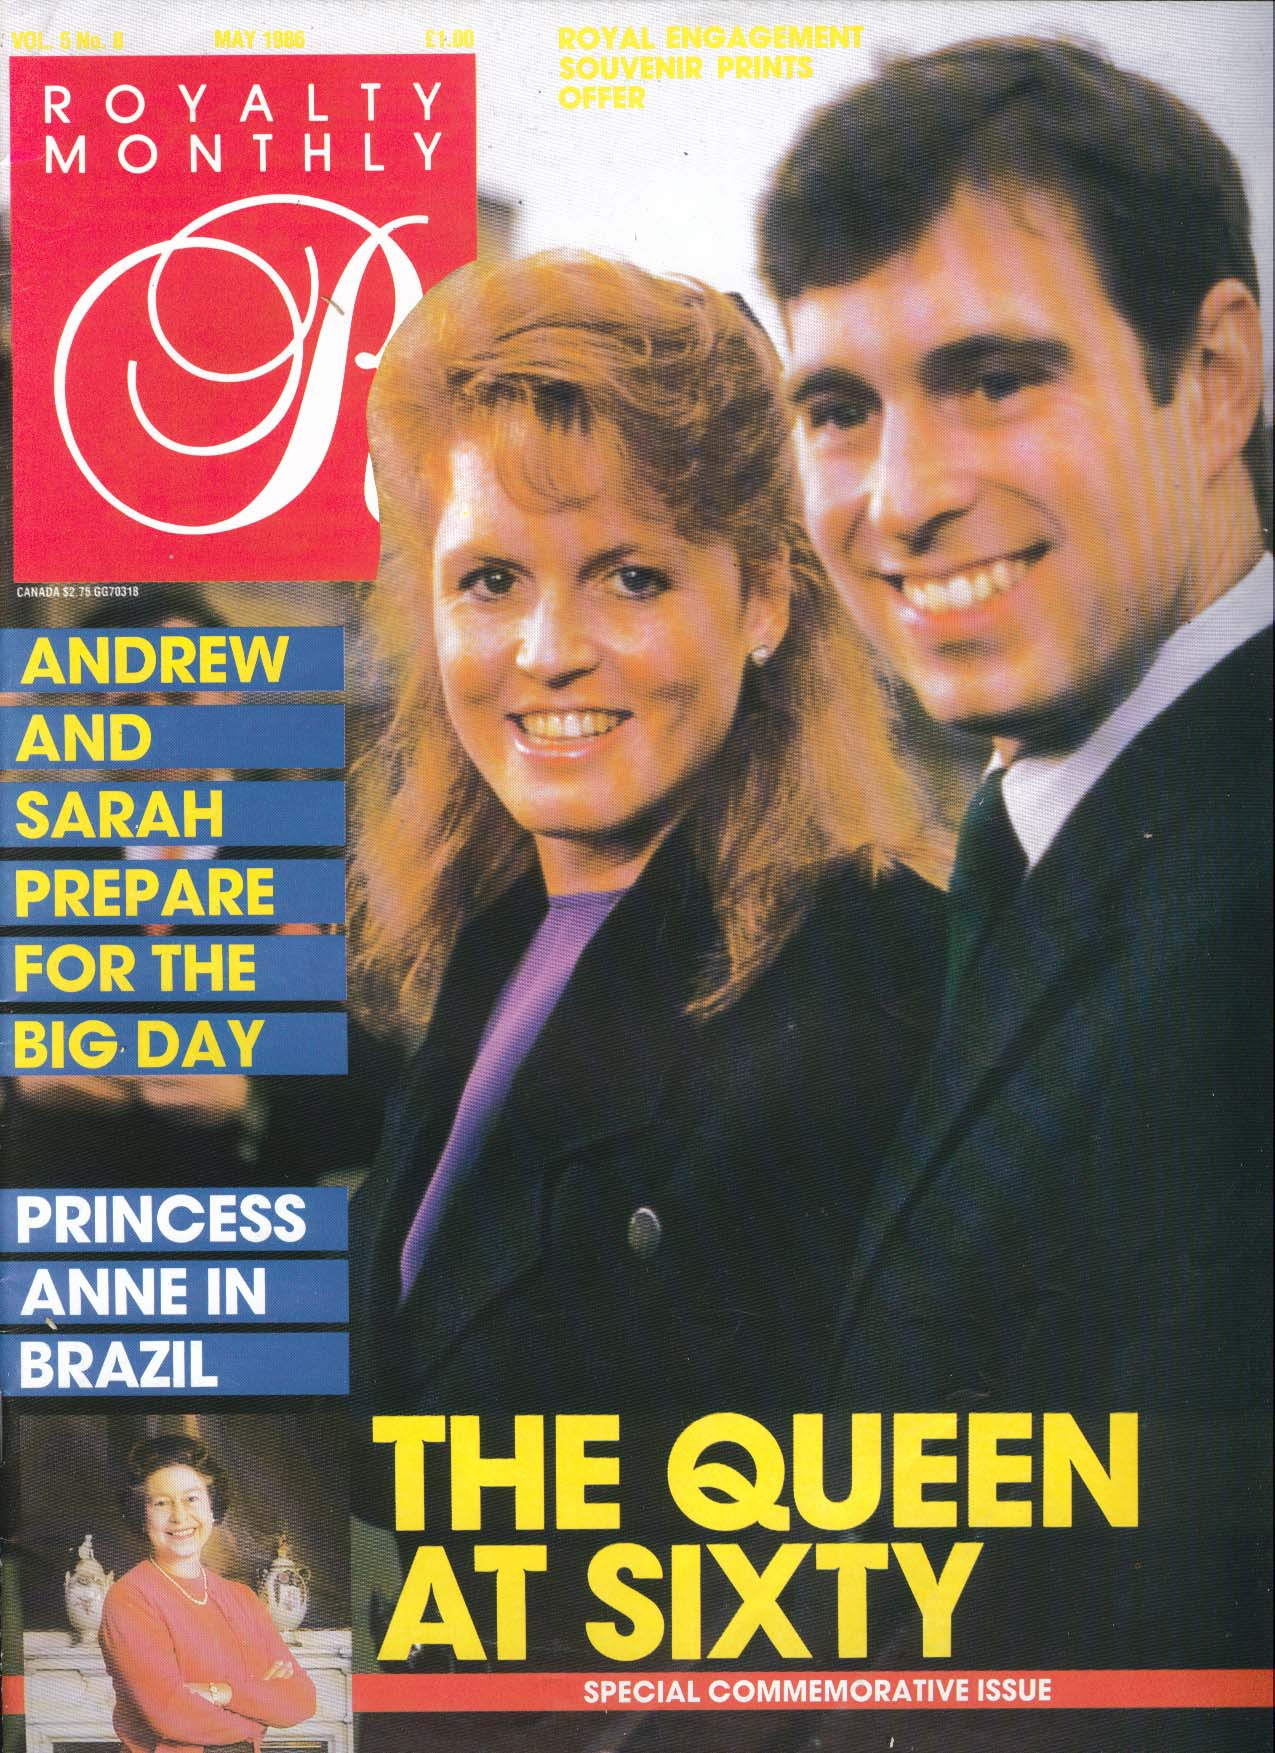 Image for ROYALTY MONTHLY Queen Elizabeth at 60 Andrew & Sarah Anne in Brazil 5 1986